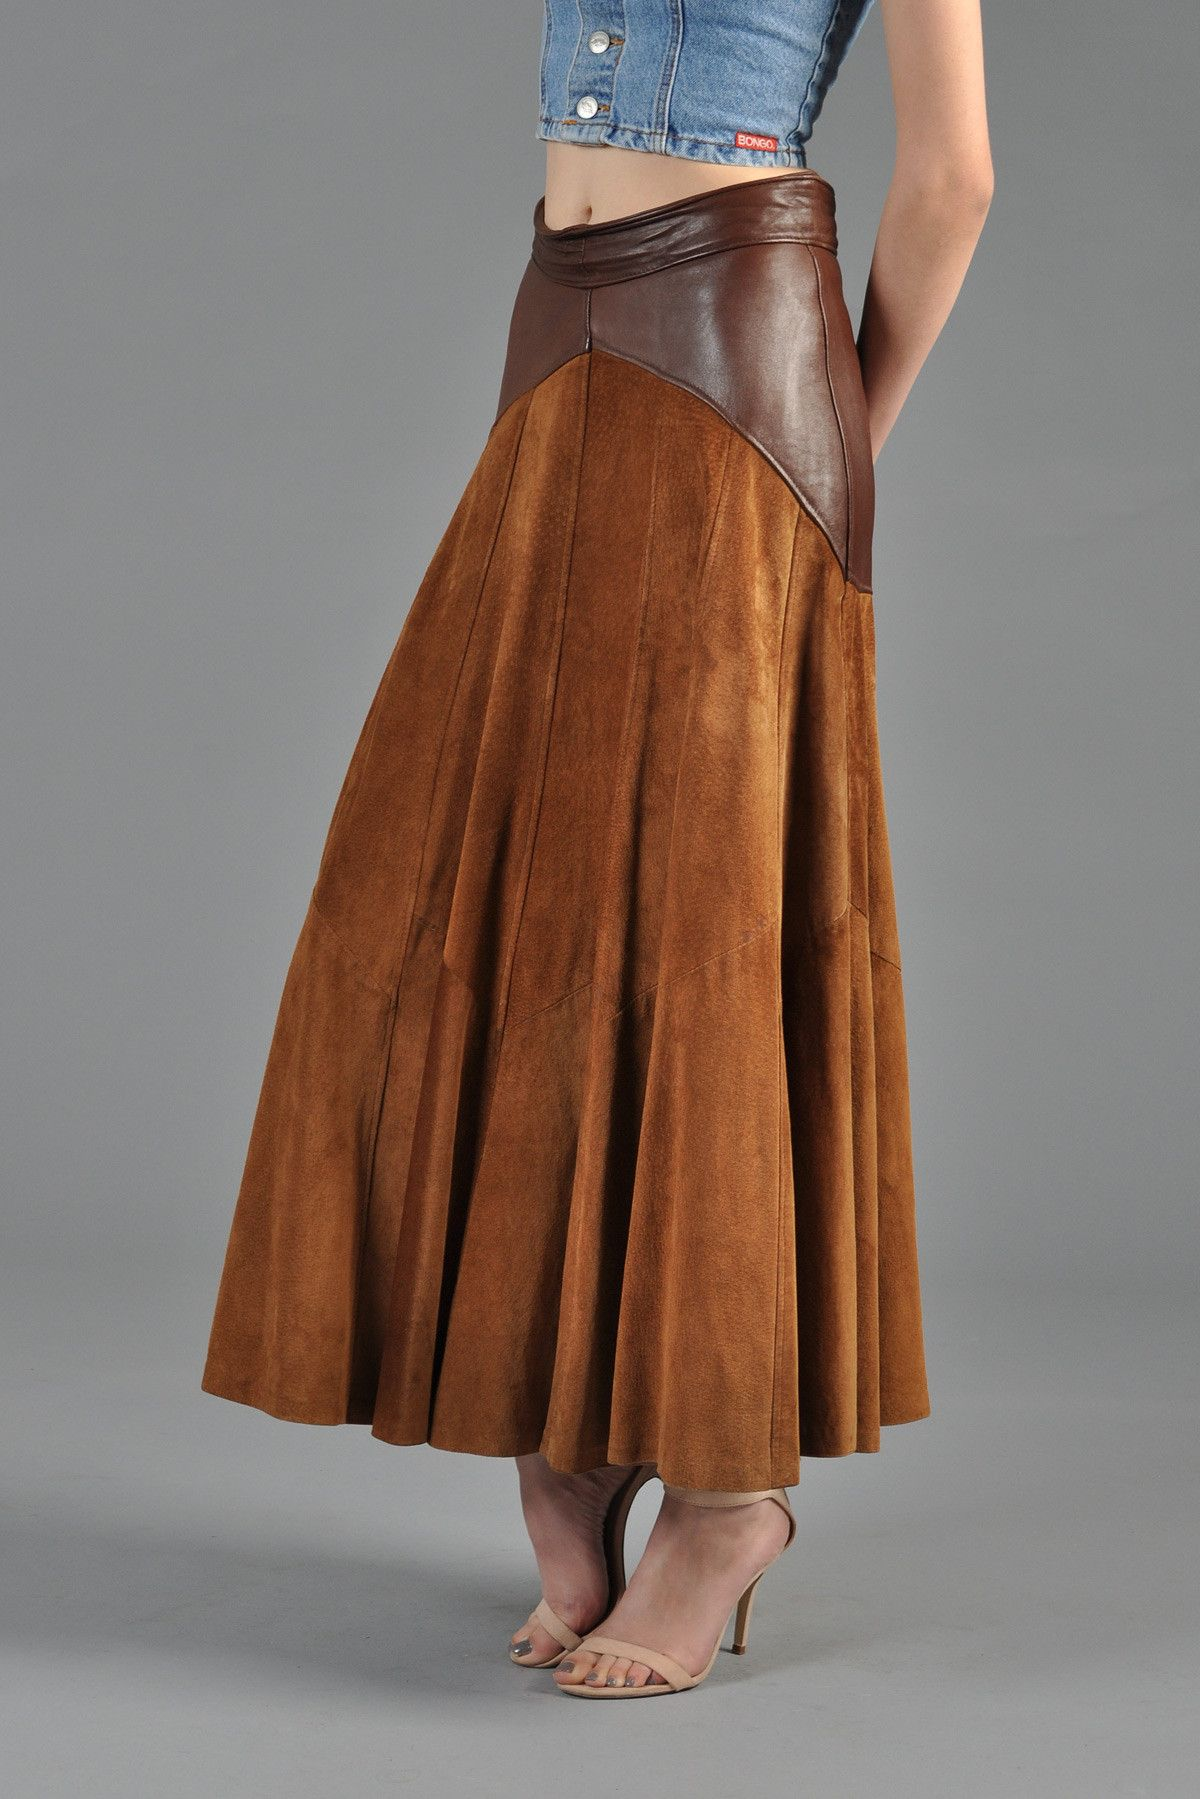 2-Tone Suede   Leather 1980s Maxi Skirt | BUSTOWN MODERN | AMFI ...